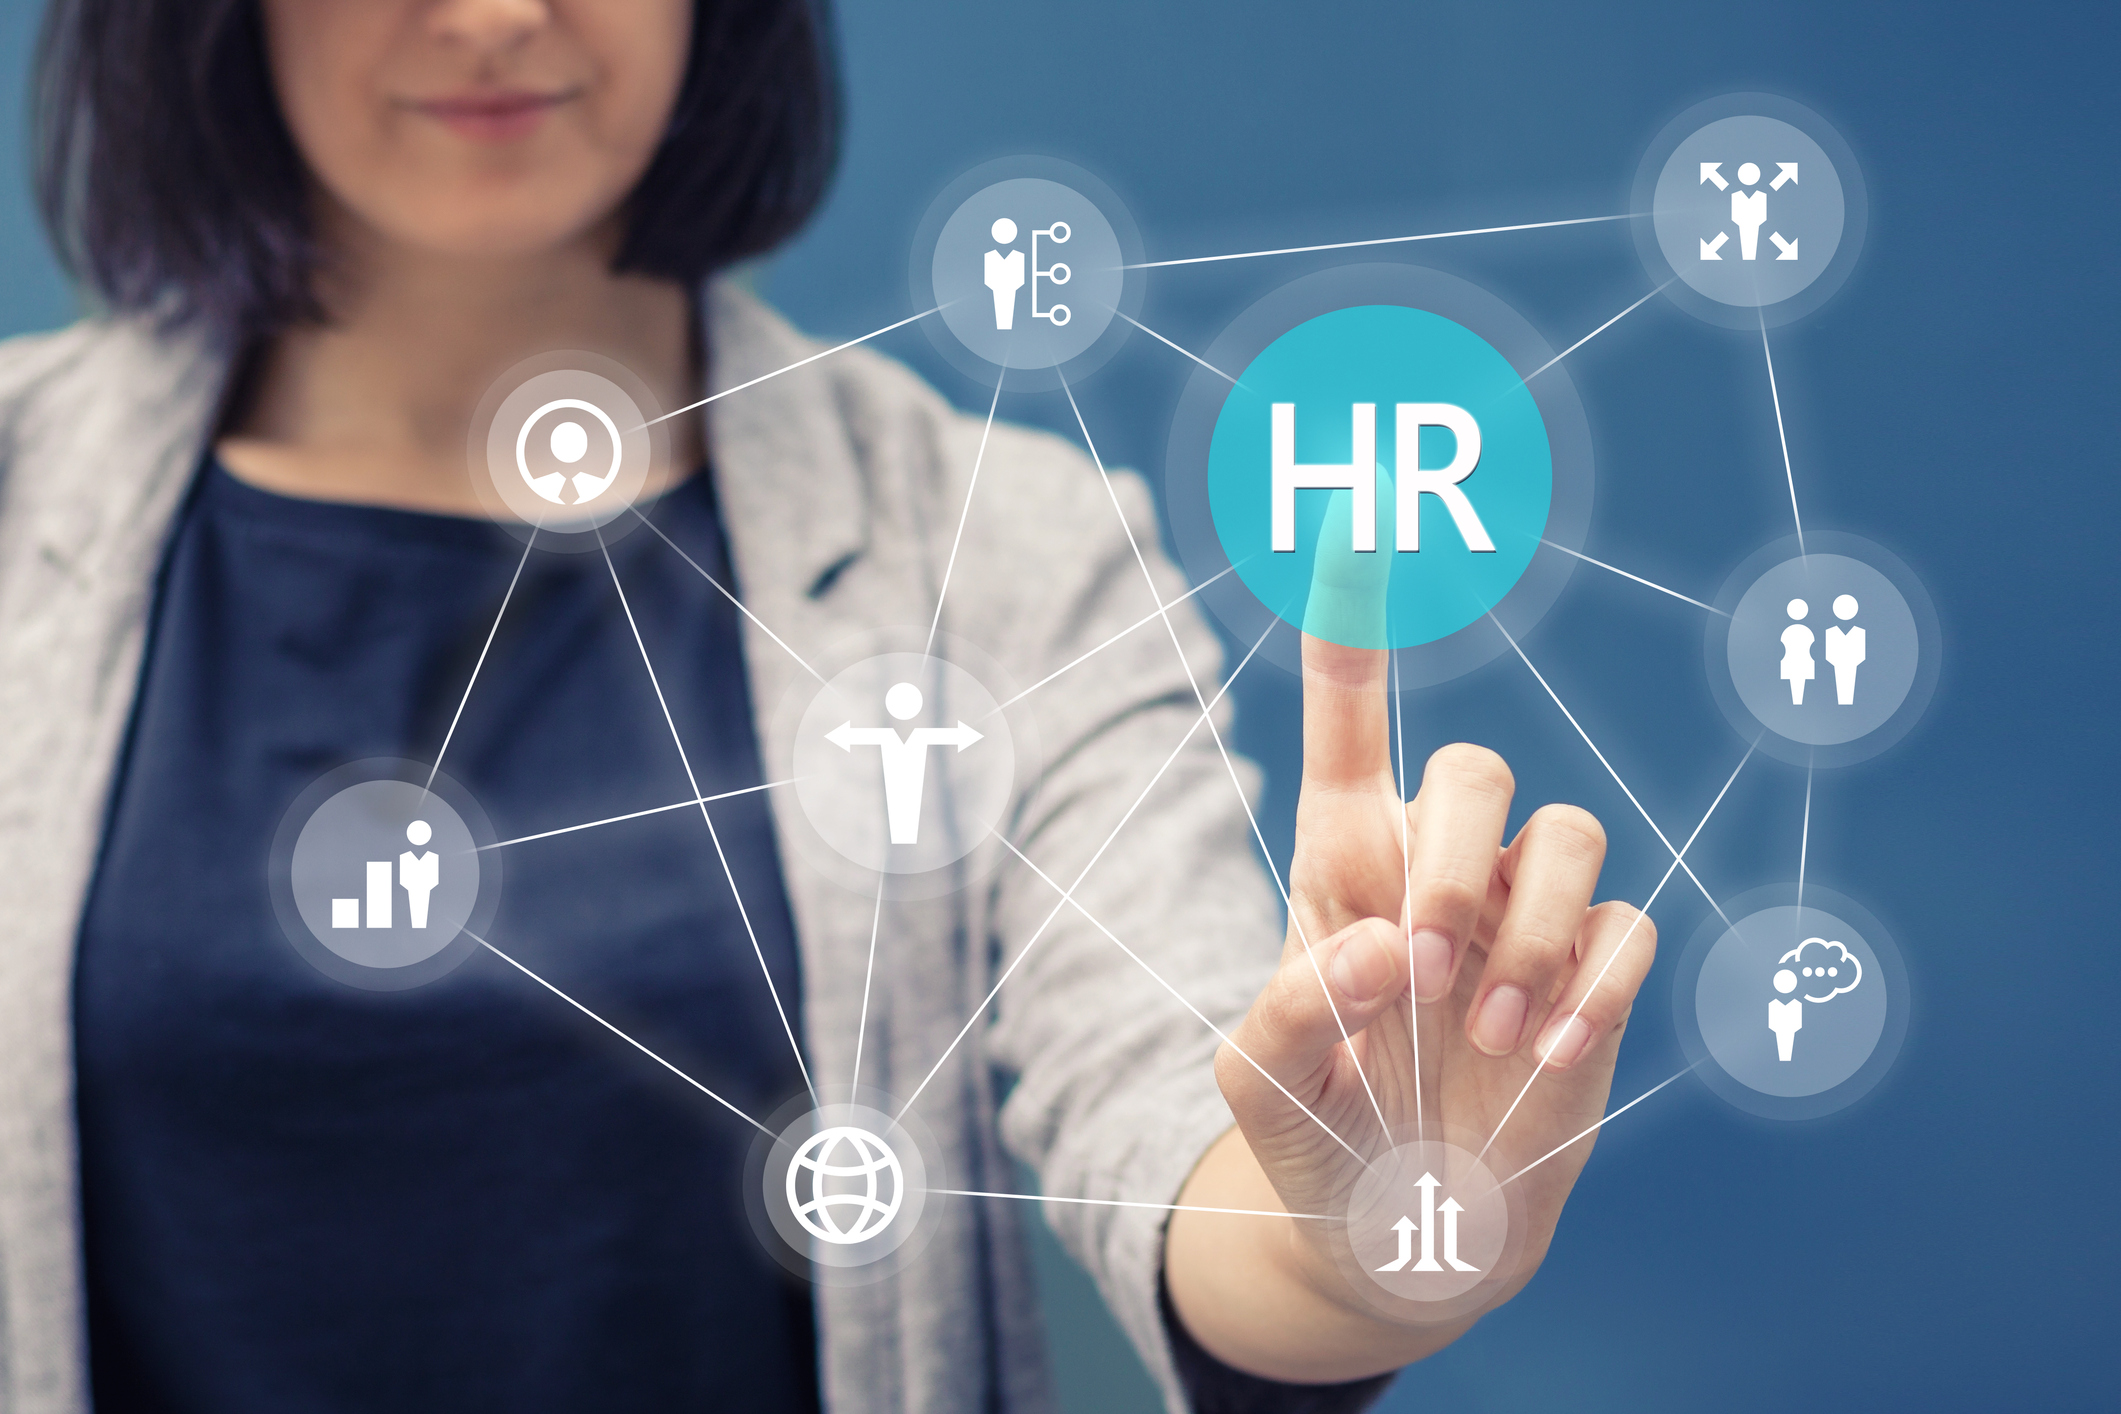 Human Resources Services - Whether you are a startup or established company, HRt can evaluate, operate or transform your Human Resources function.Learn more